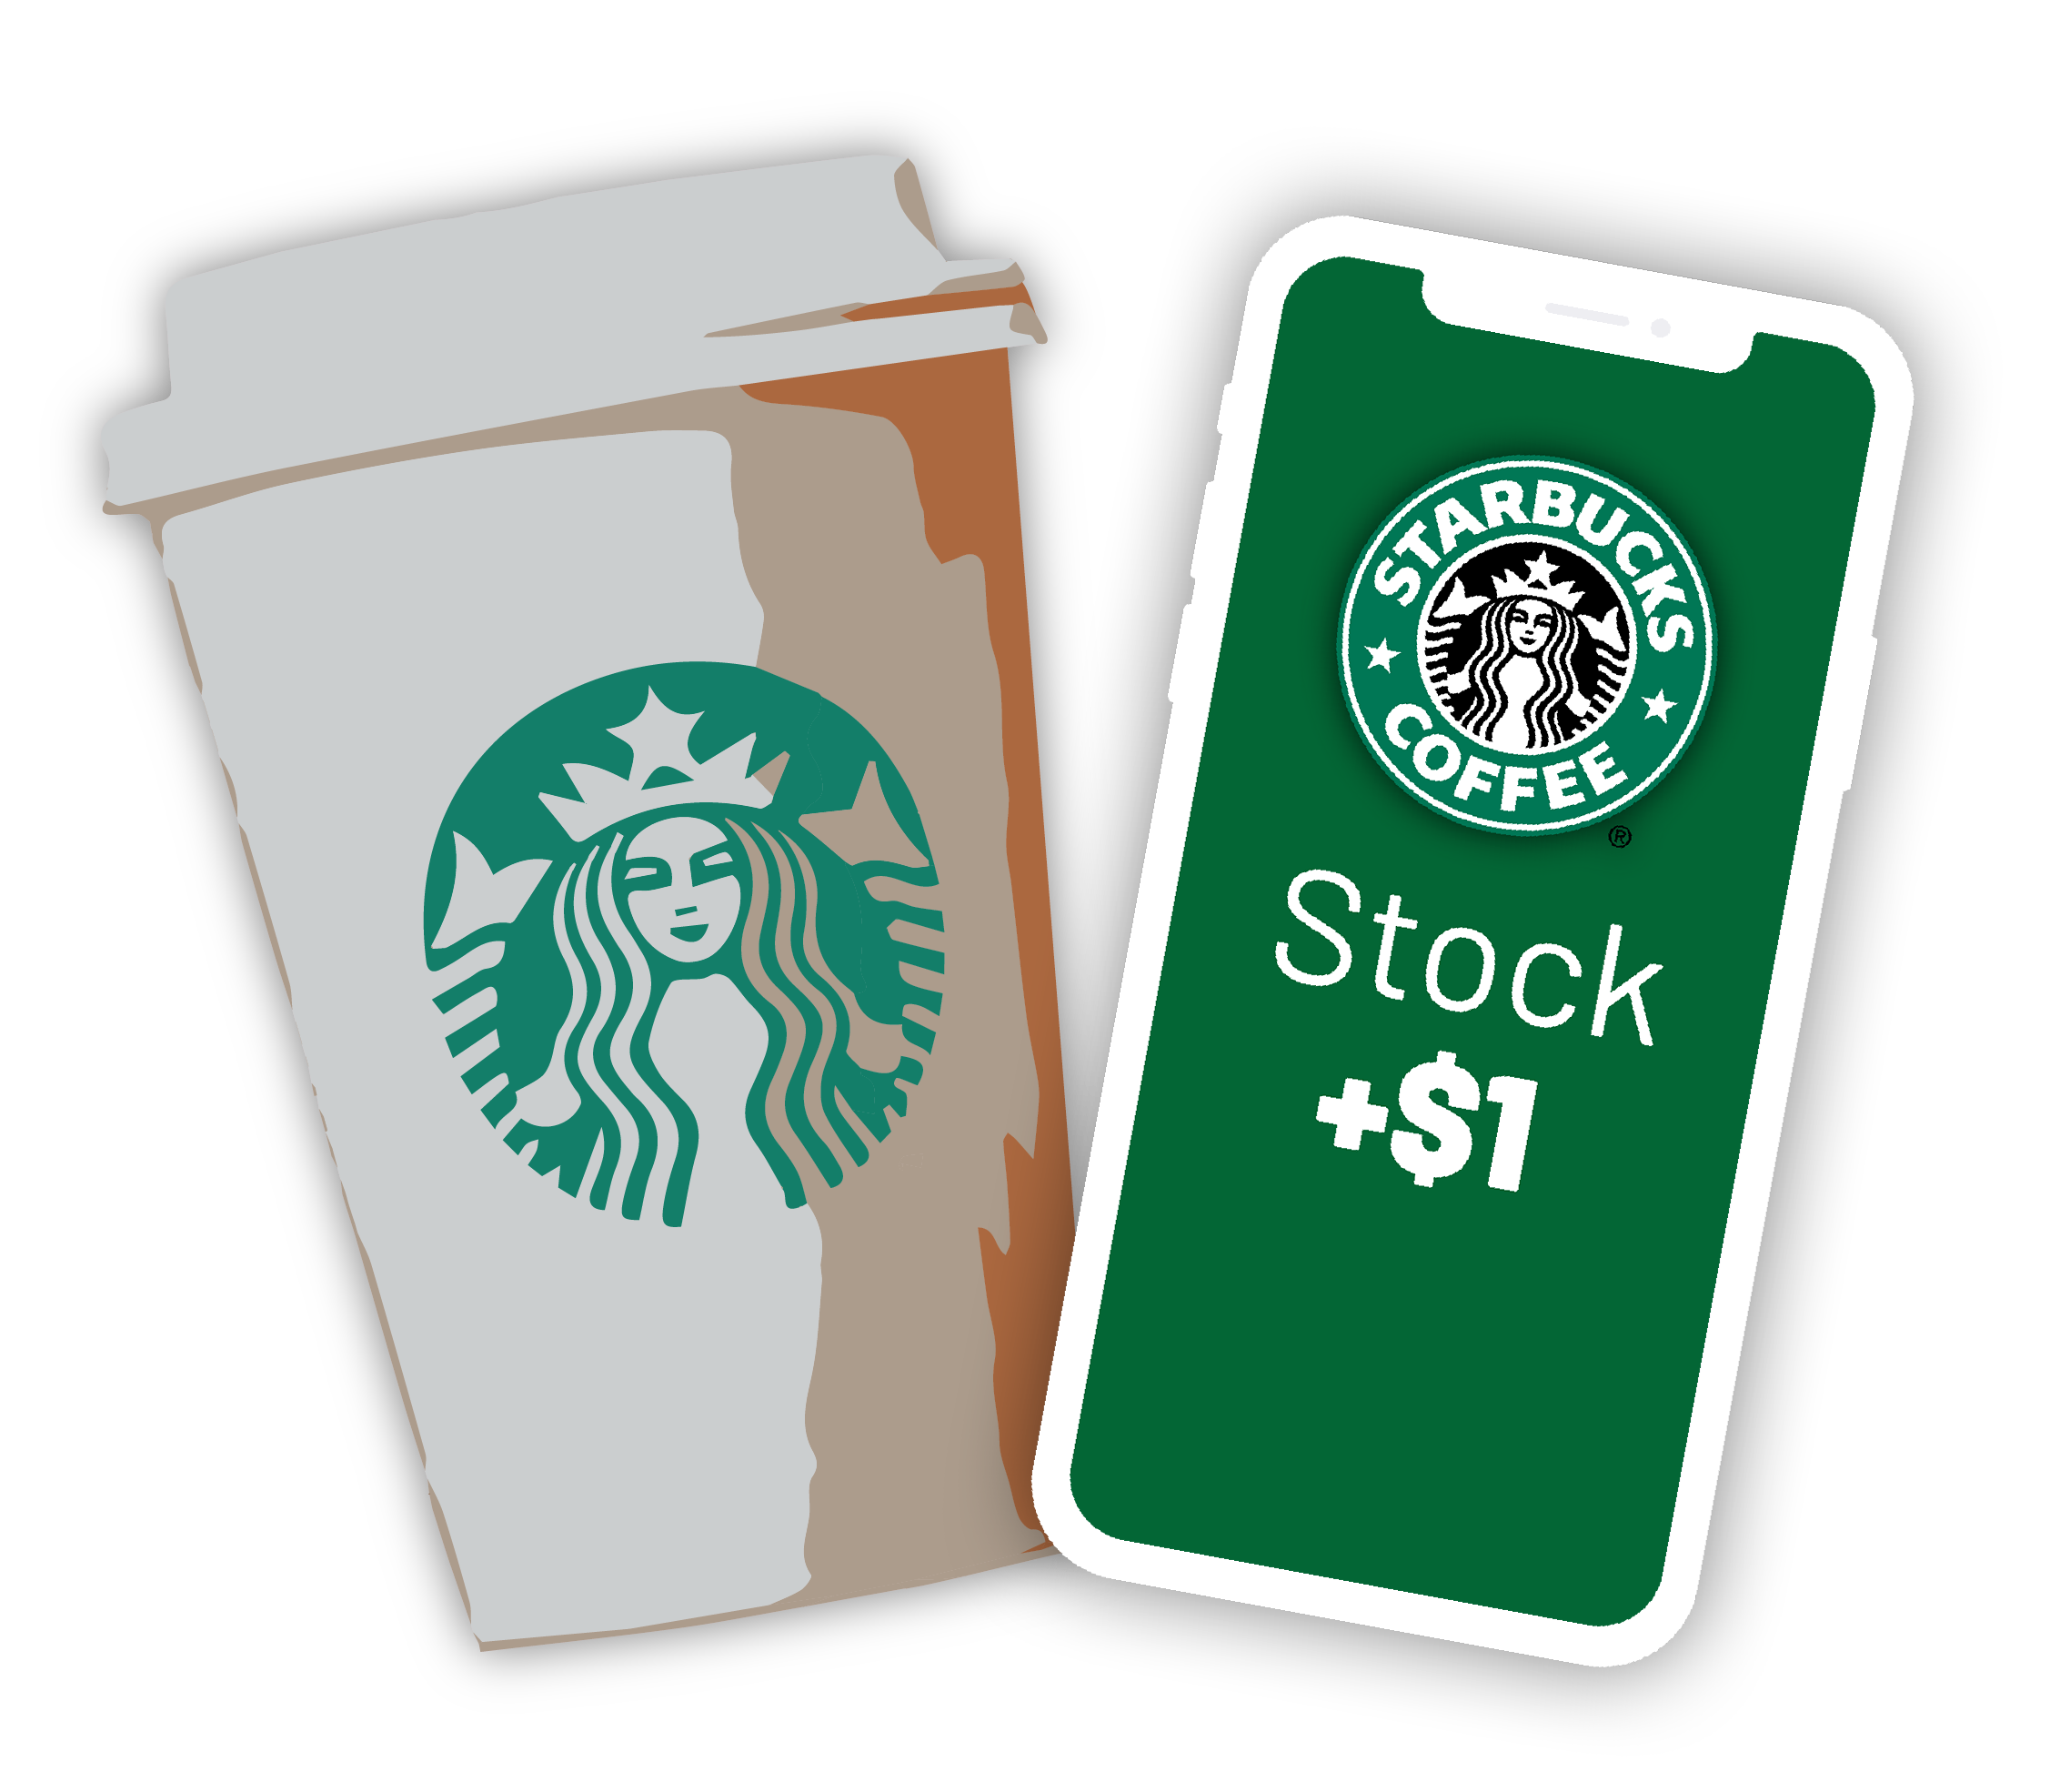 grifin_starbucks_invest_save_$1up_roundup.png